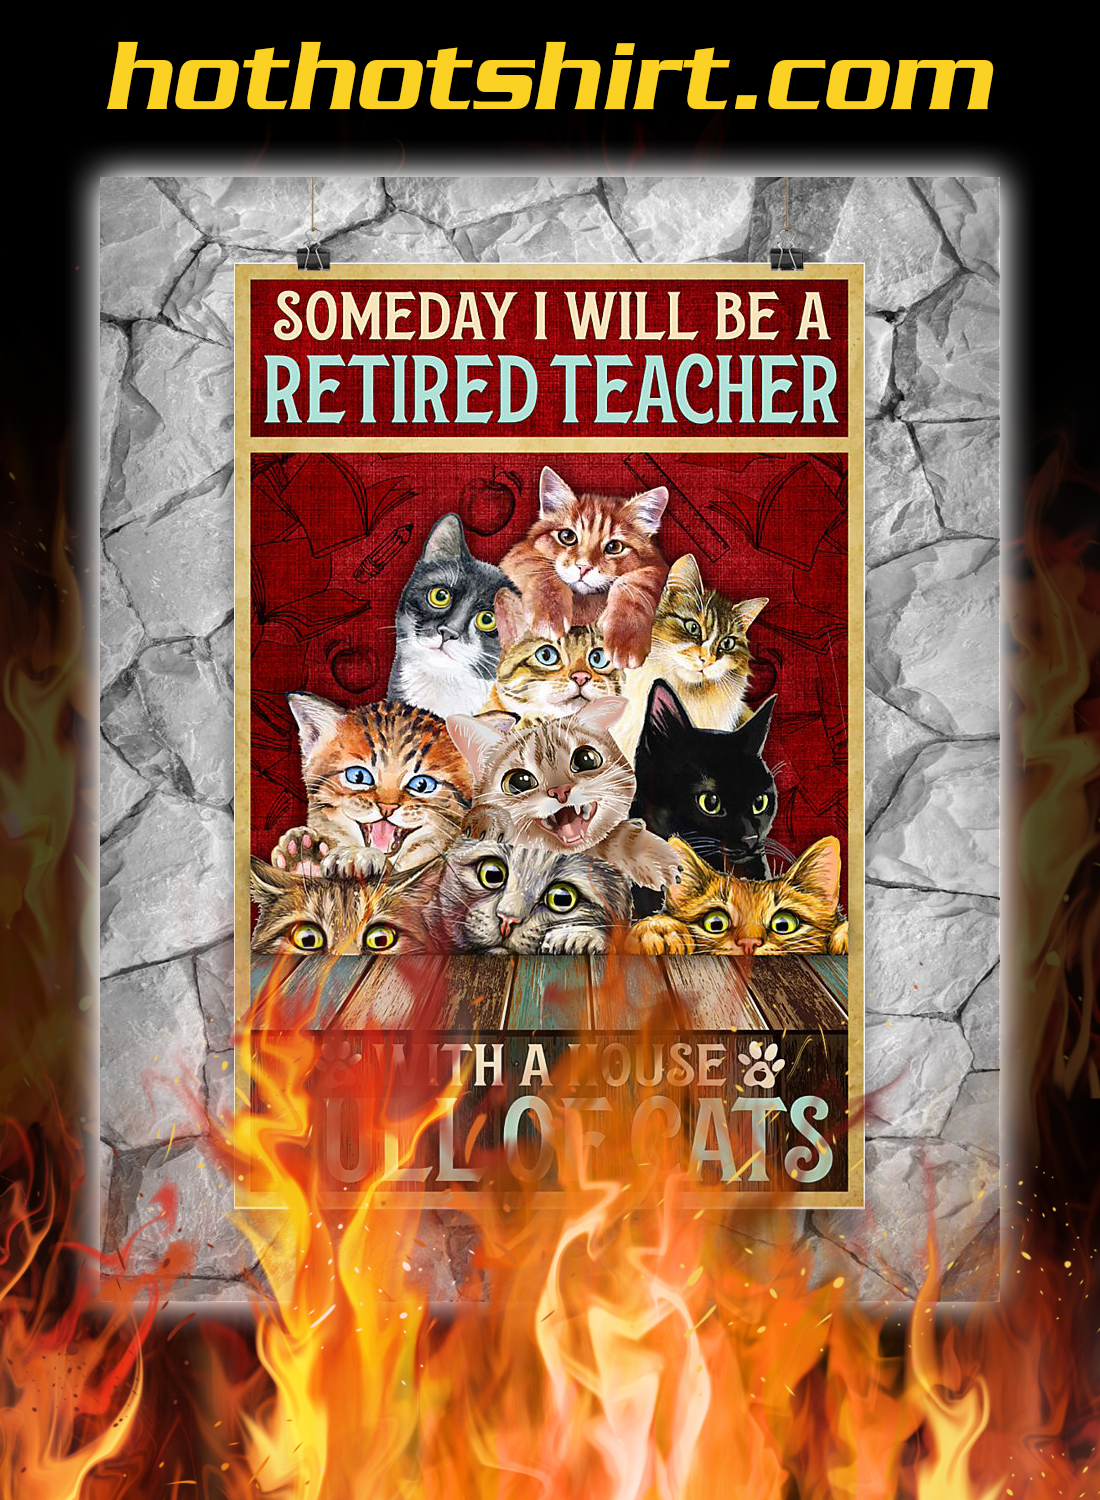 Someday i will be a retired teacher with a house full of cats poster 2